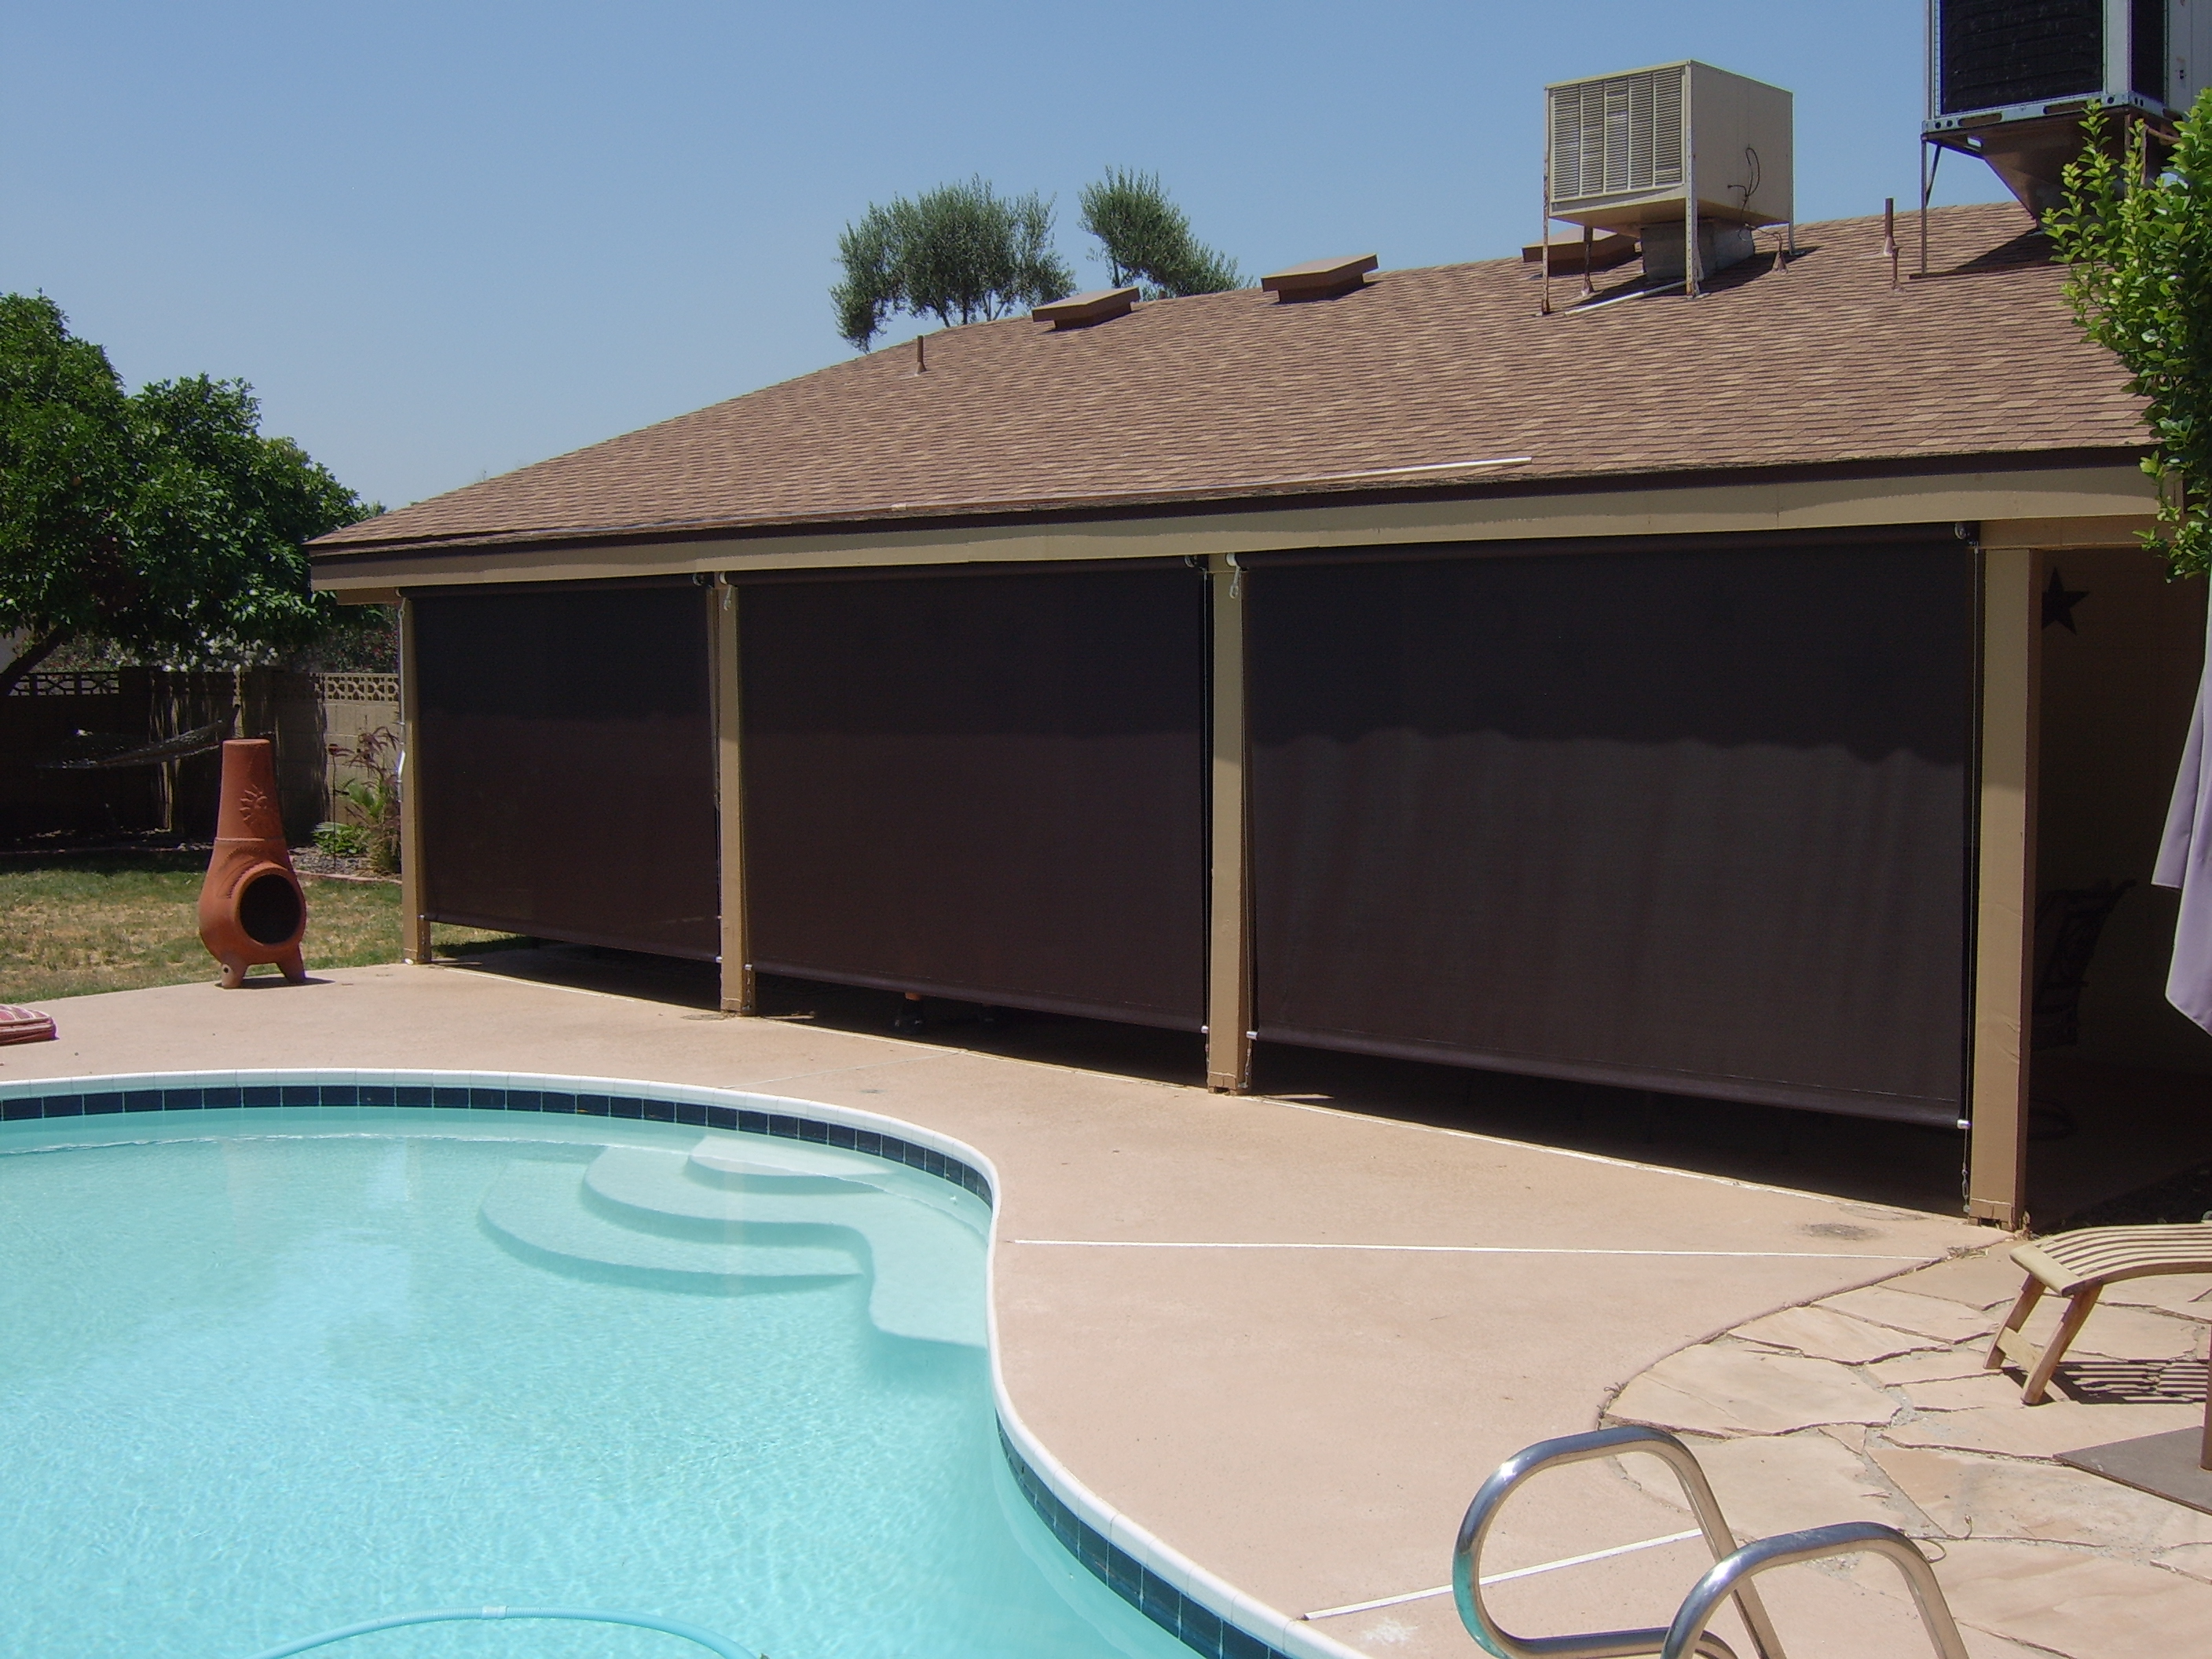 Arizona Sun Screen Patio Shade Screens Crank Roll Up Blinds